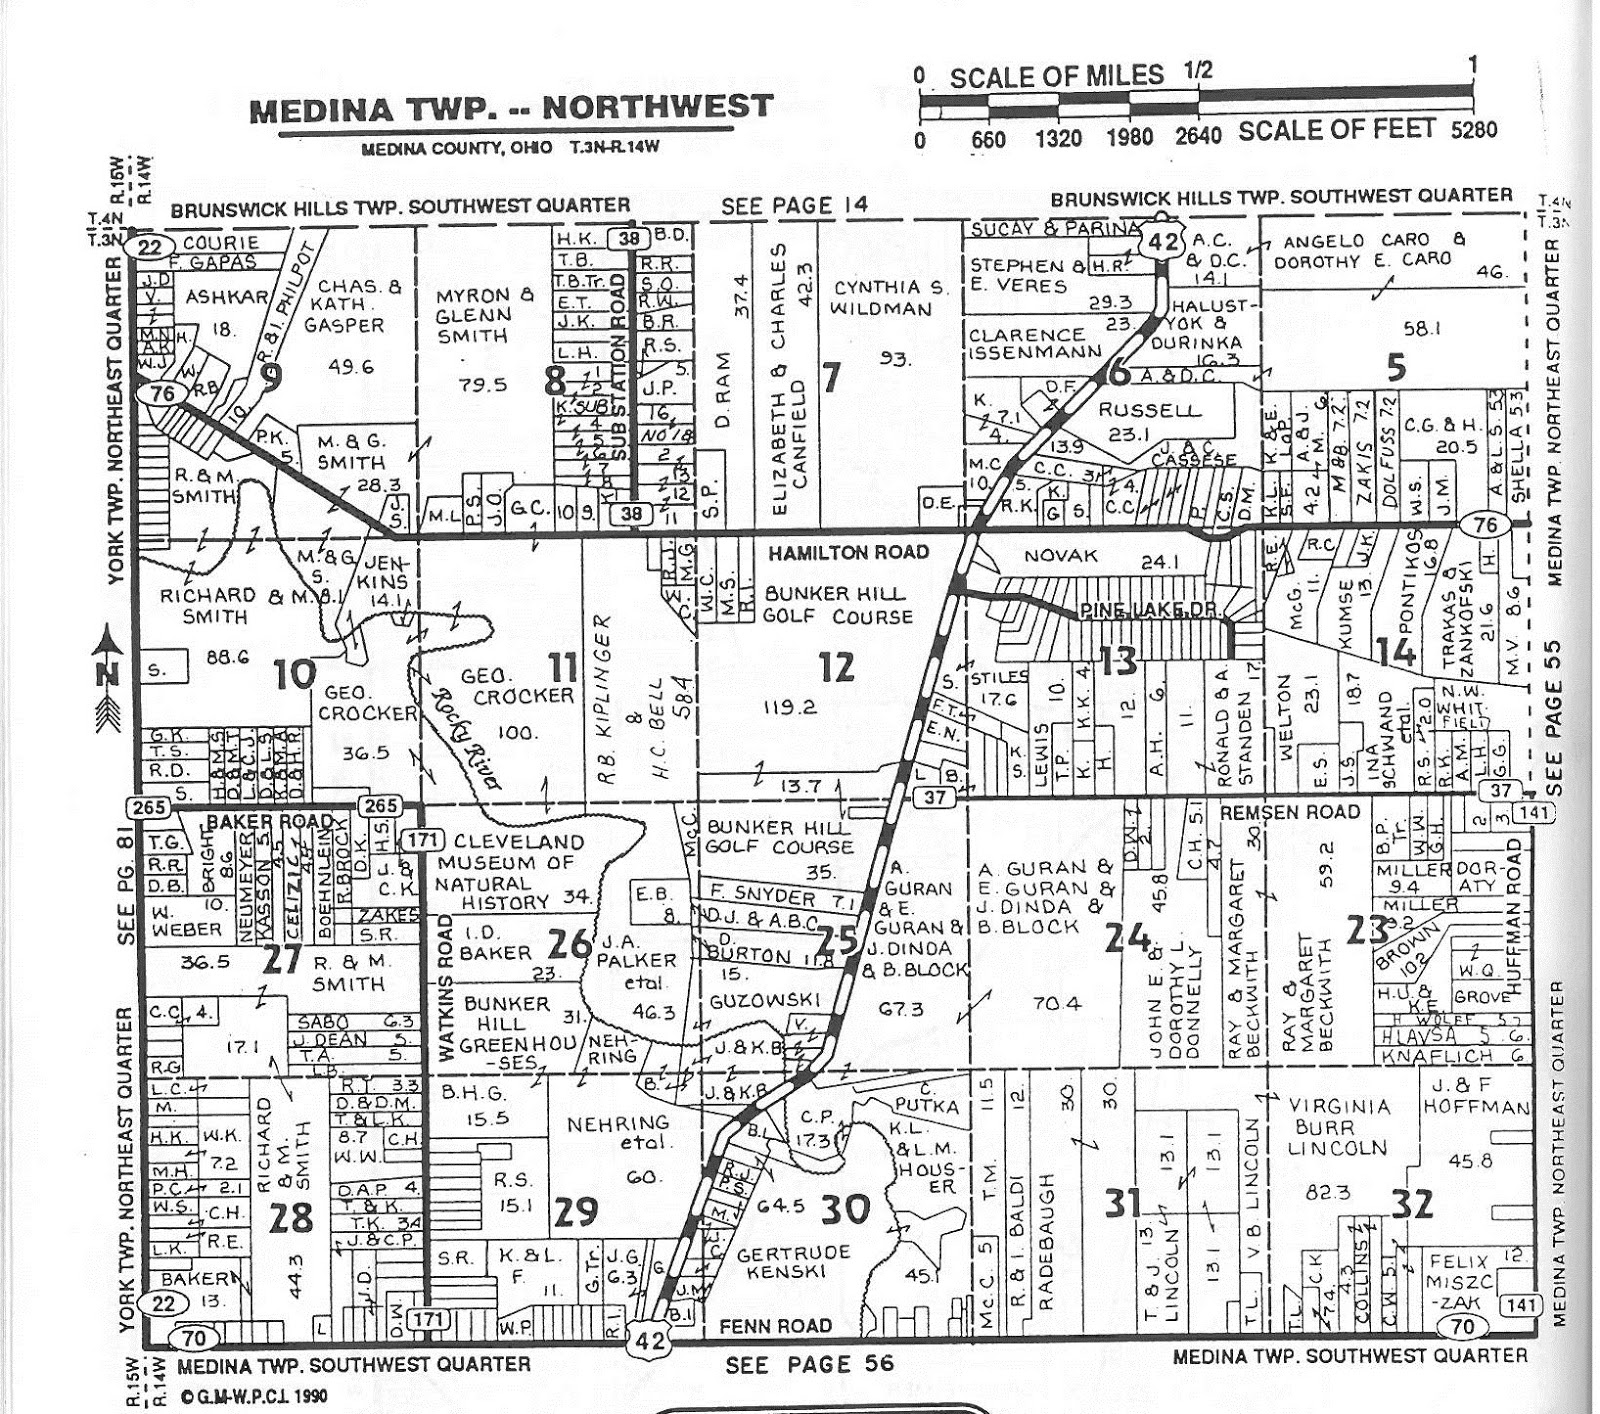 plat maps show land ownership also listed here is the acreage of each portion of land